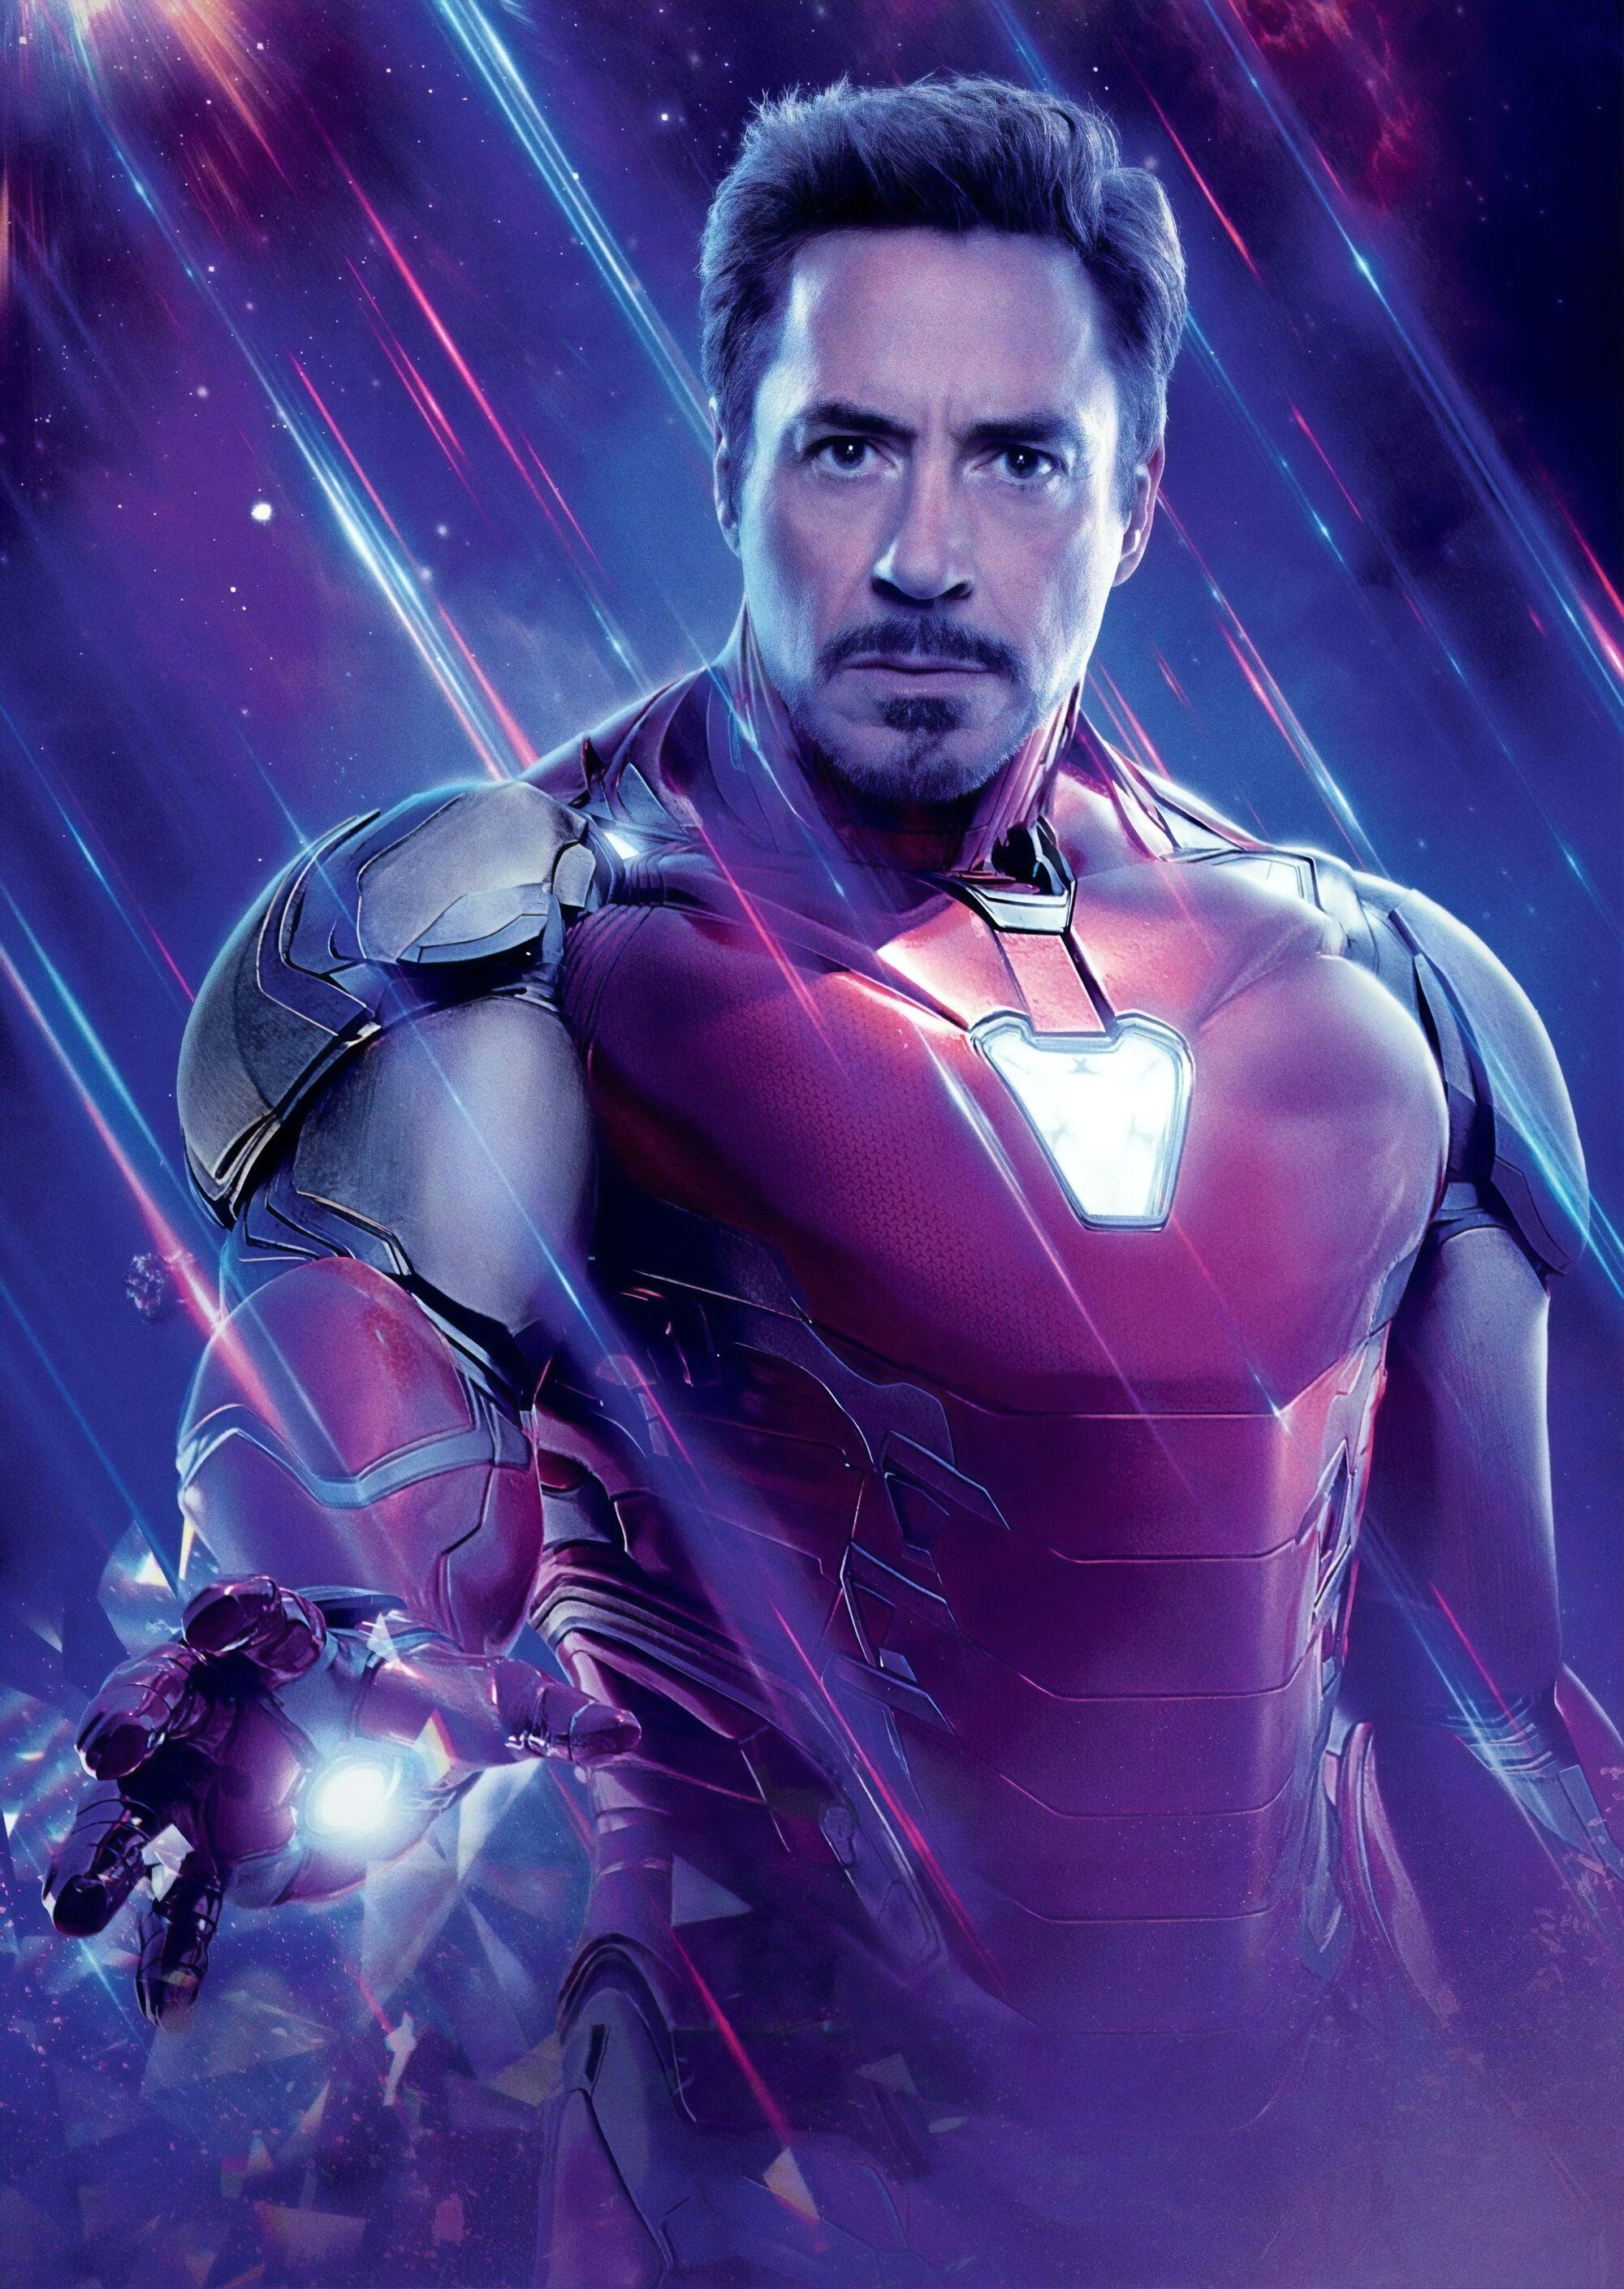 new concept 9aa47 d1847 Iron Man   Marvel Cinematic Universe Wiki   FANDOM powered by Wikia